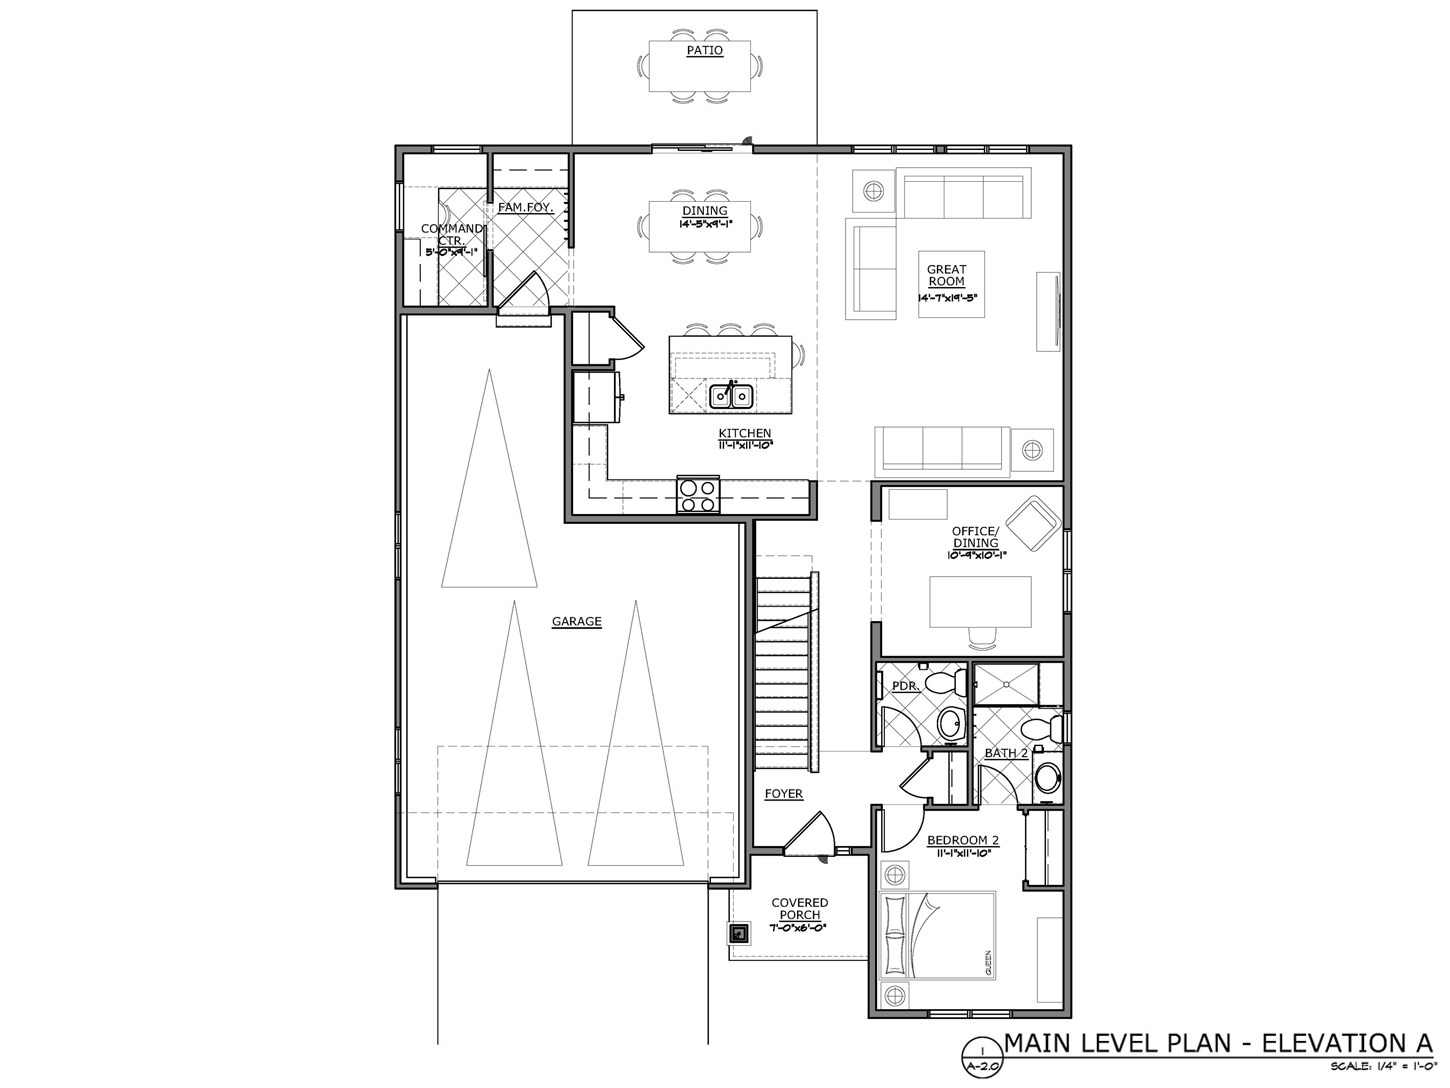 03_monarch_ft_20collins_main_level_elevation_a_fox_20grove